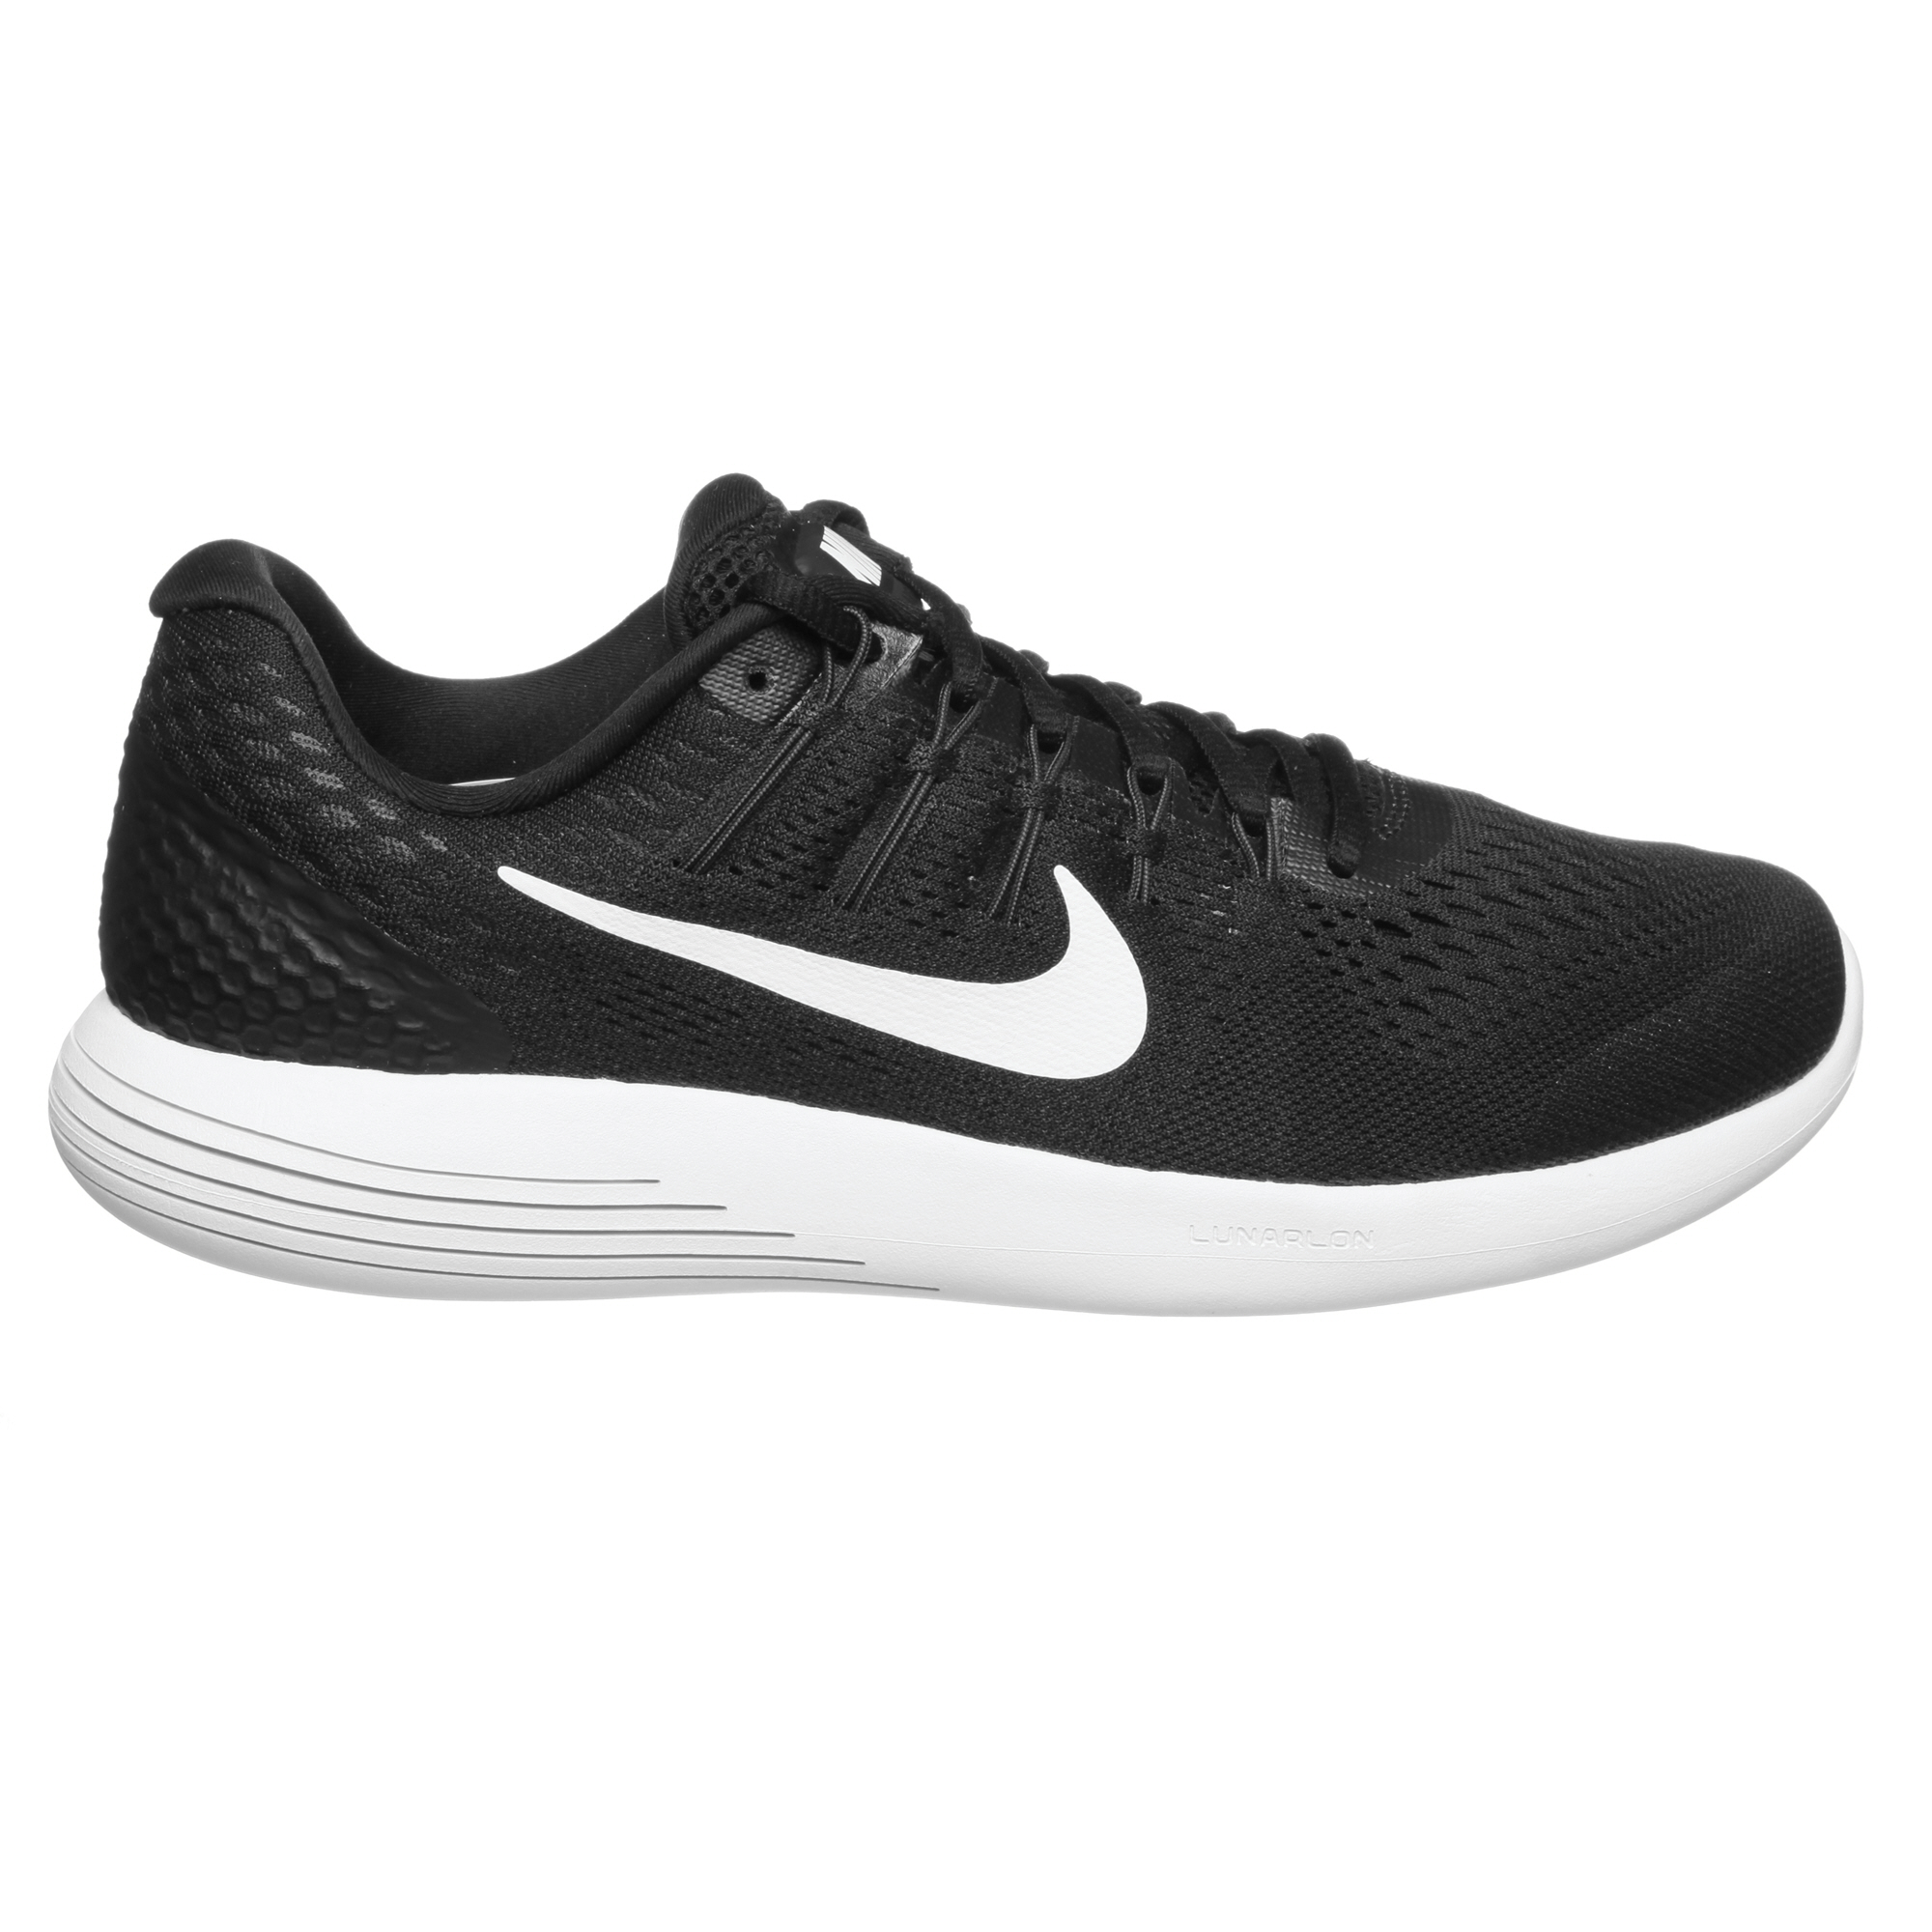 design de qualité c9733 5fd2d Nike Lunarglide 8 Shoes